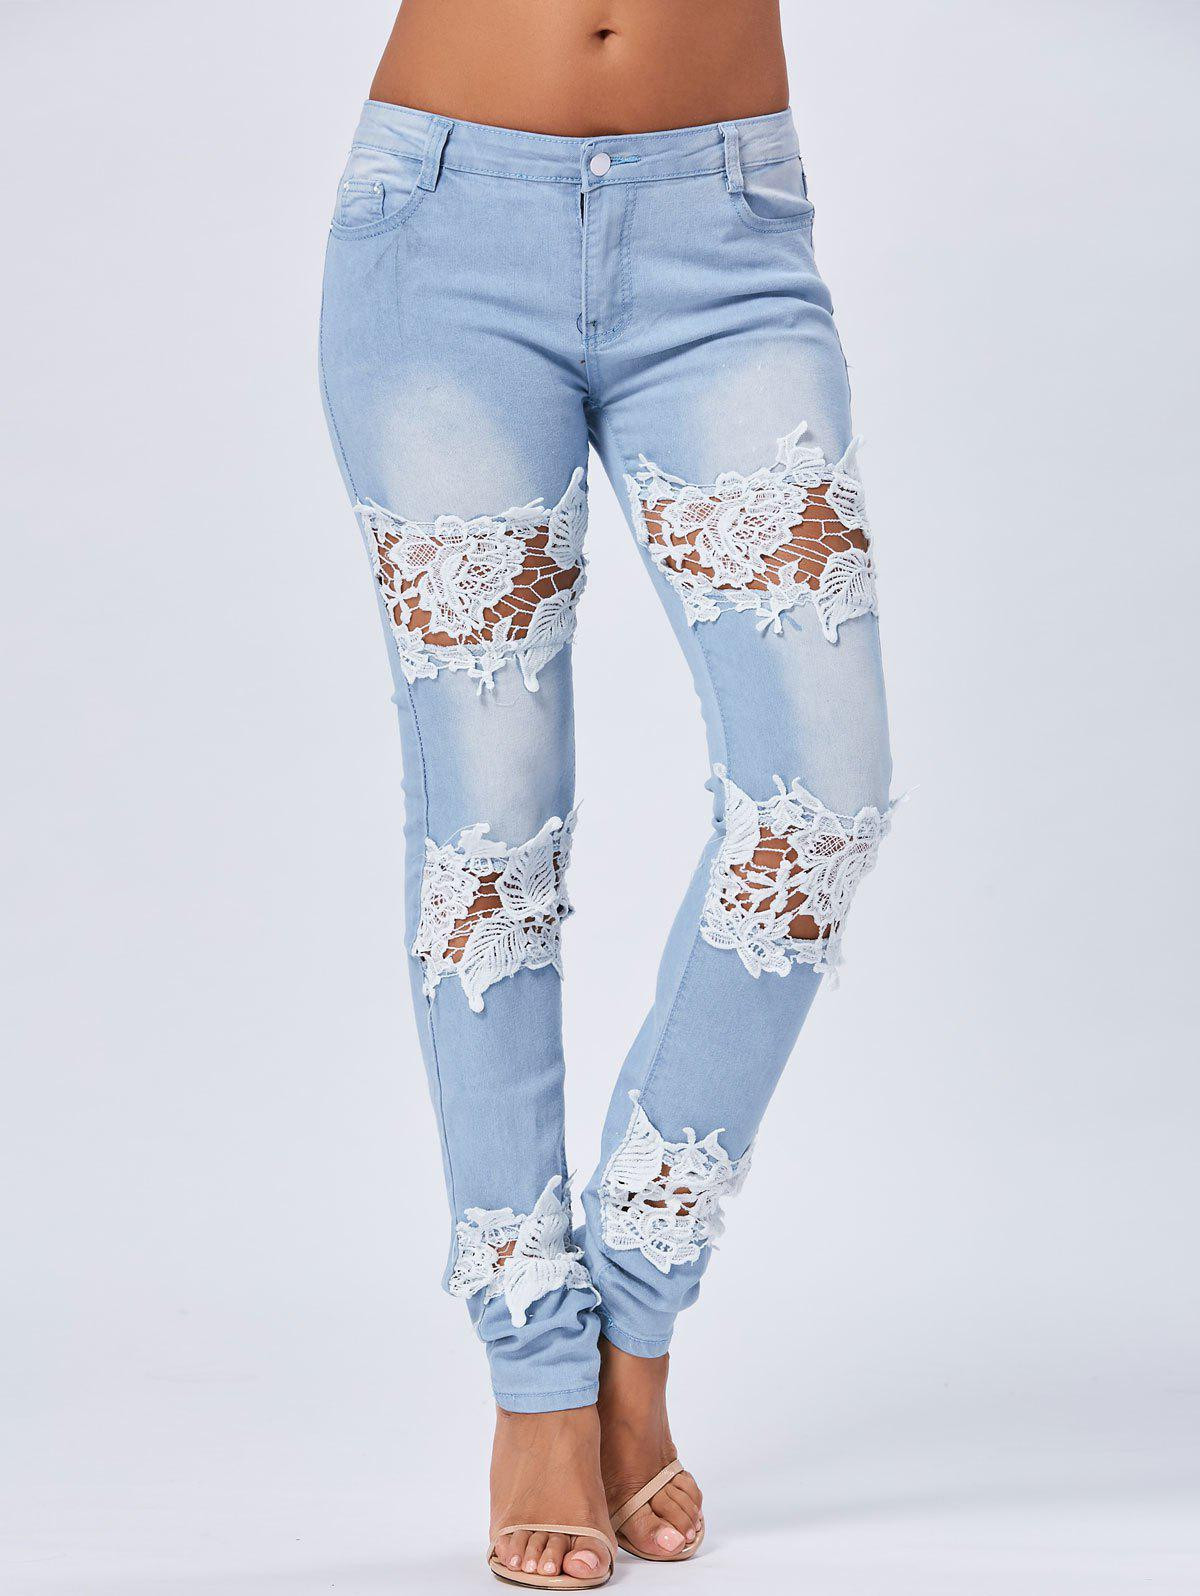 Skinny Lace Trim Light Wash JeansWOMEN<br><br>Size: XL; Color: BLUE; Material: Polyester; Length: Normal; Wash: Light; Fit Type: Regular; Closure Type: Zipper Fly; Weight: 0.5050kg; Package Contents: 1 x Jeans;